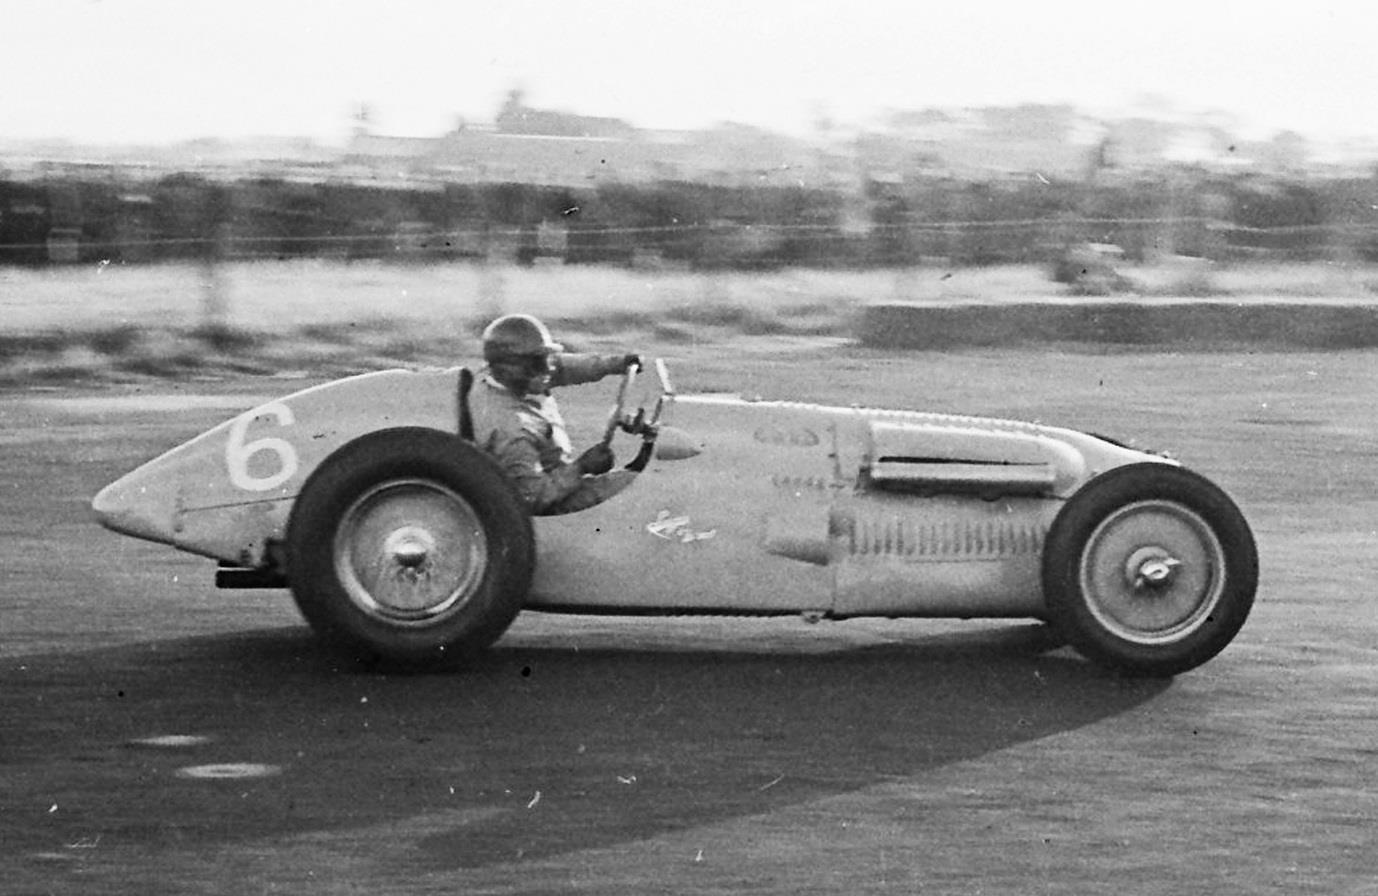 Yves-Giraud-Cabantous at the wheel of his Talbot-Lago, Charterhall 1952